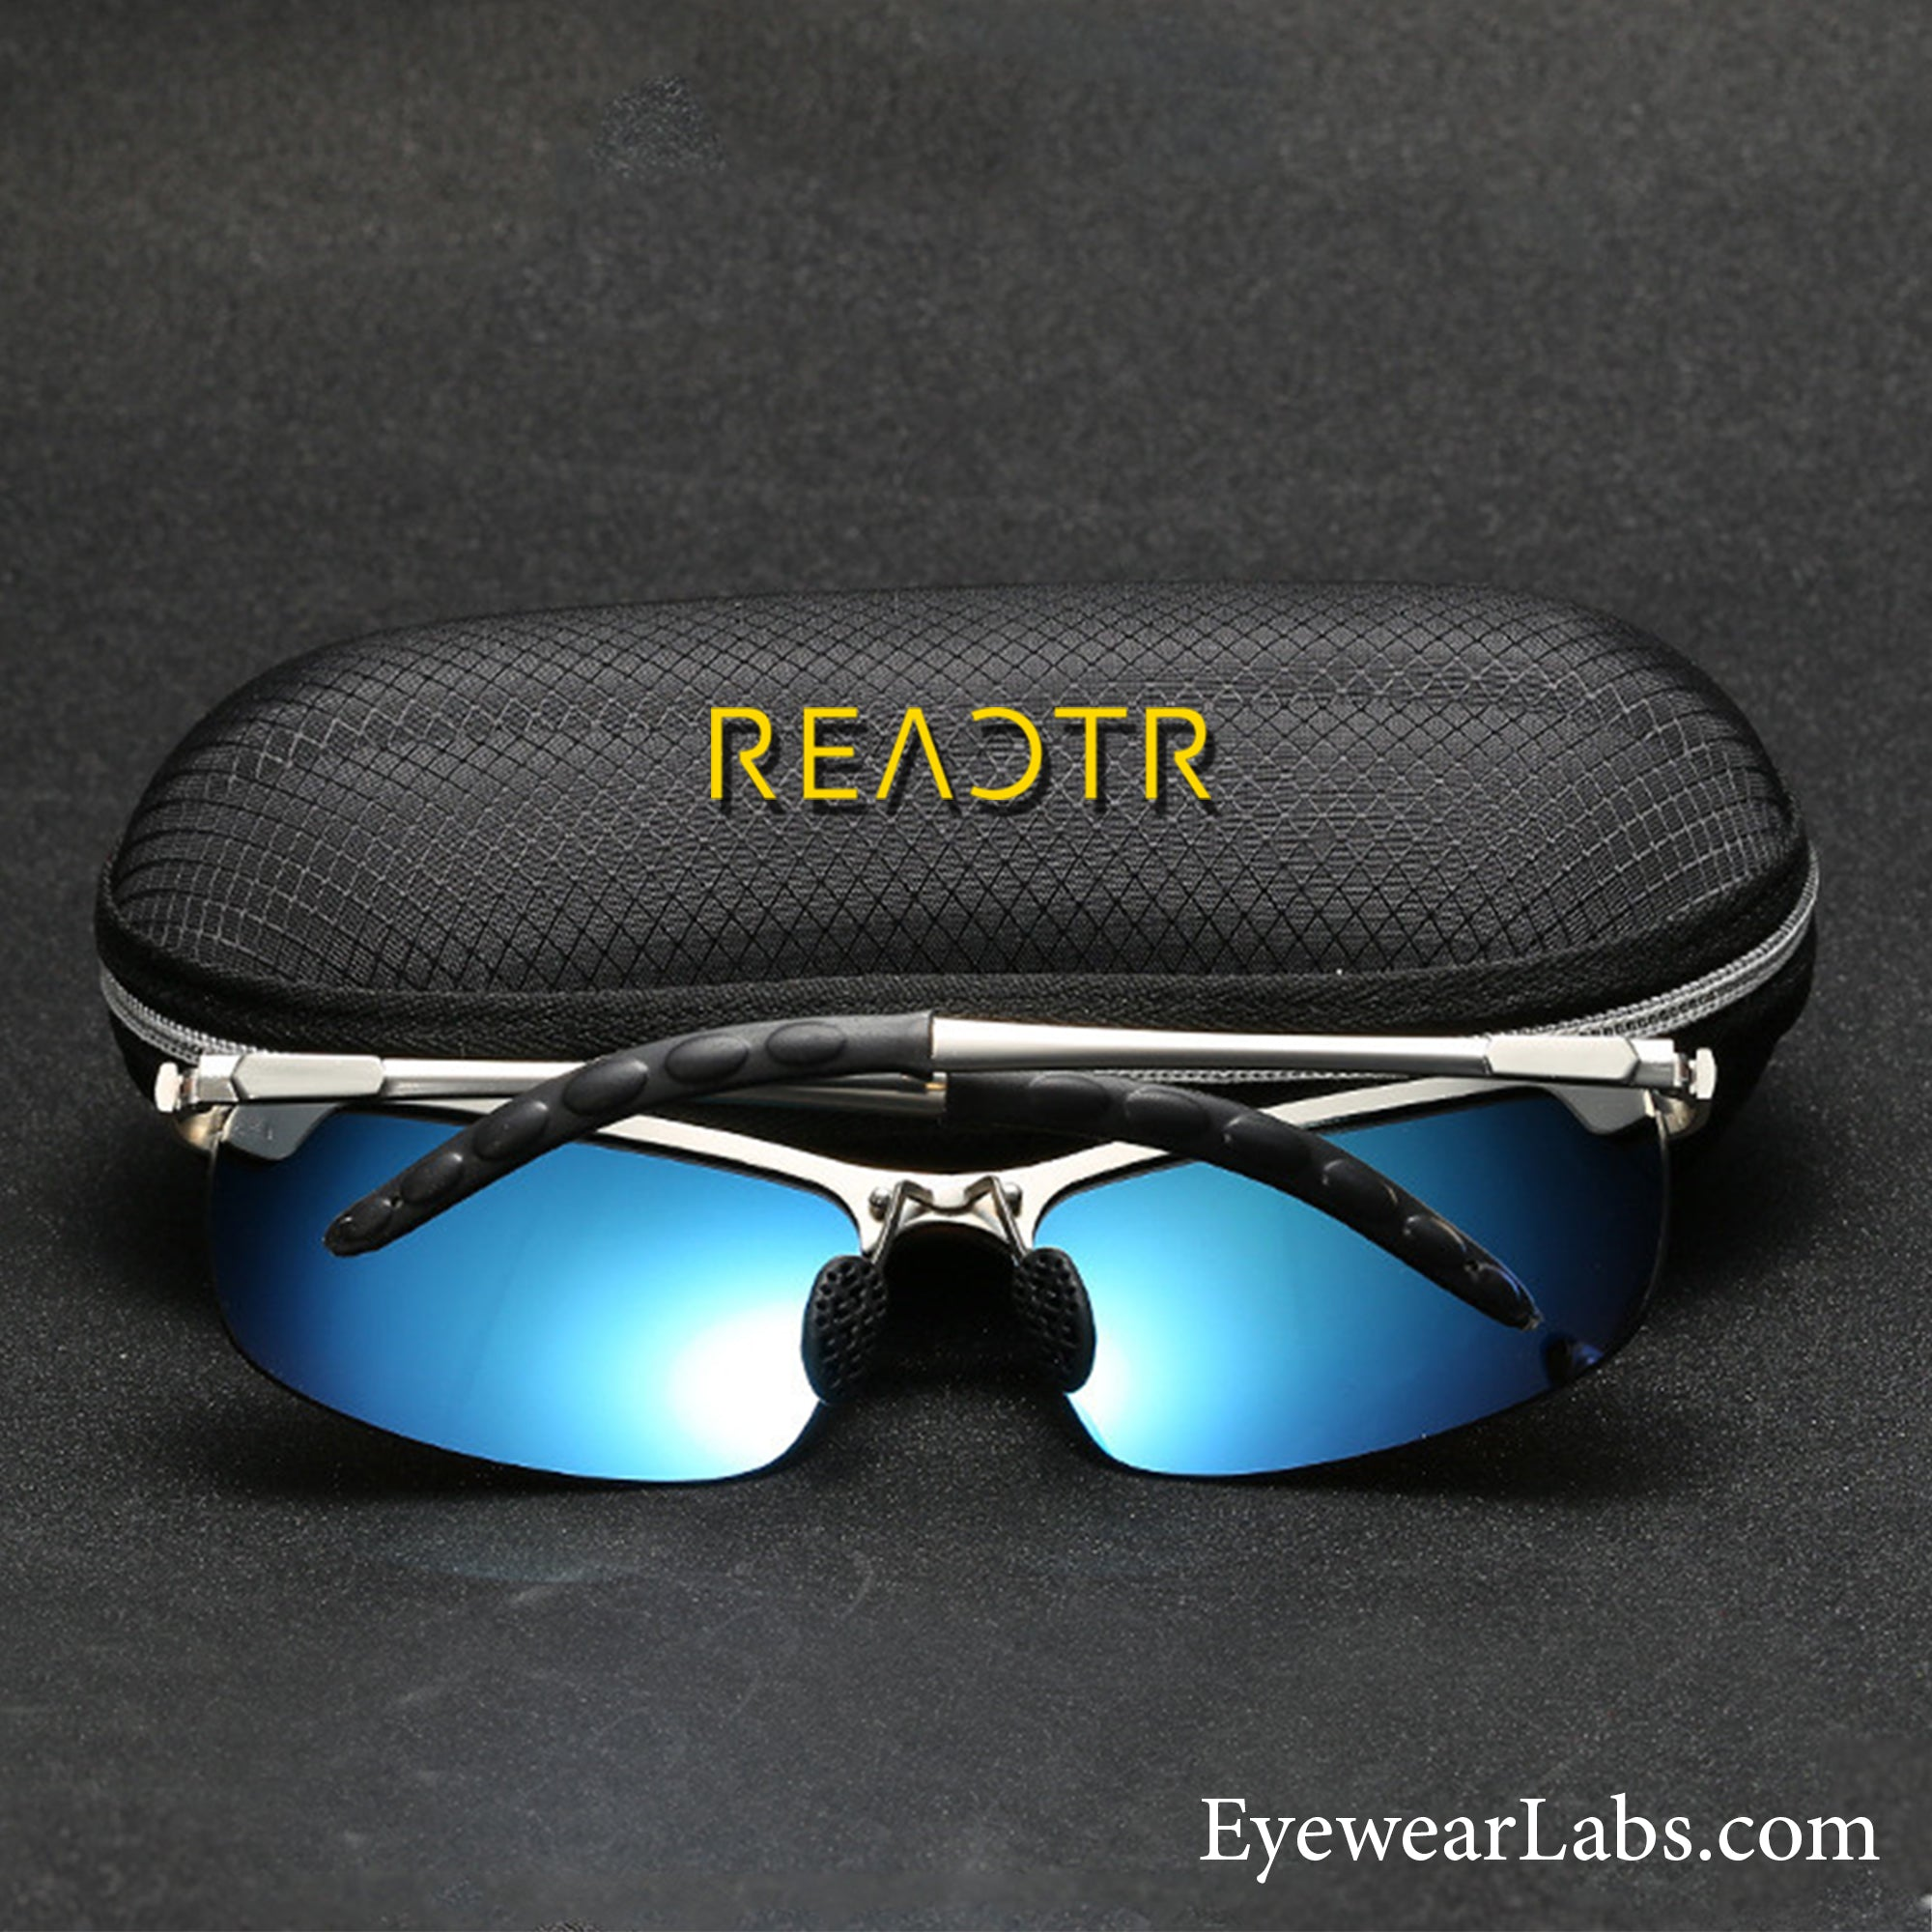 e1e73e63a757 They have superb gathering of eyeglasses for round face shapes online.